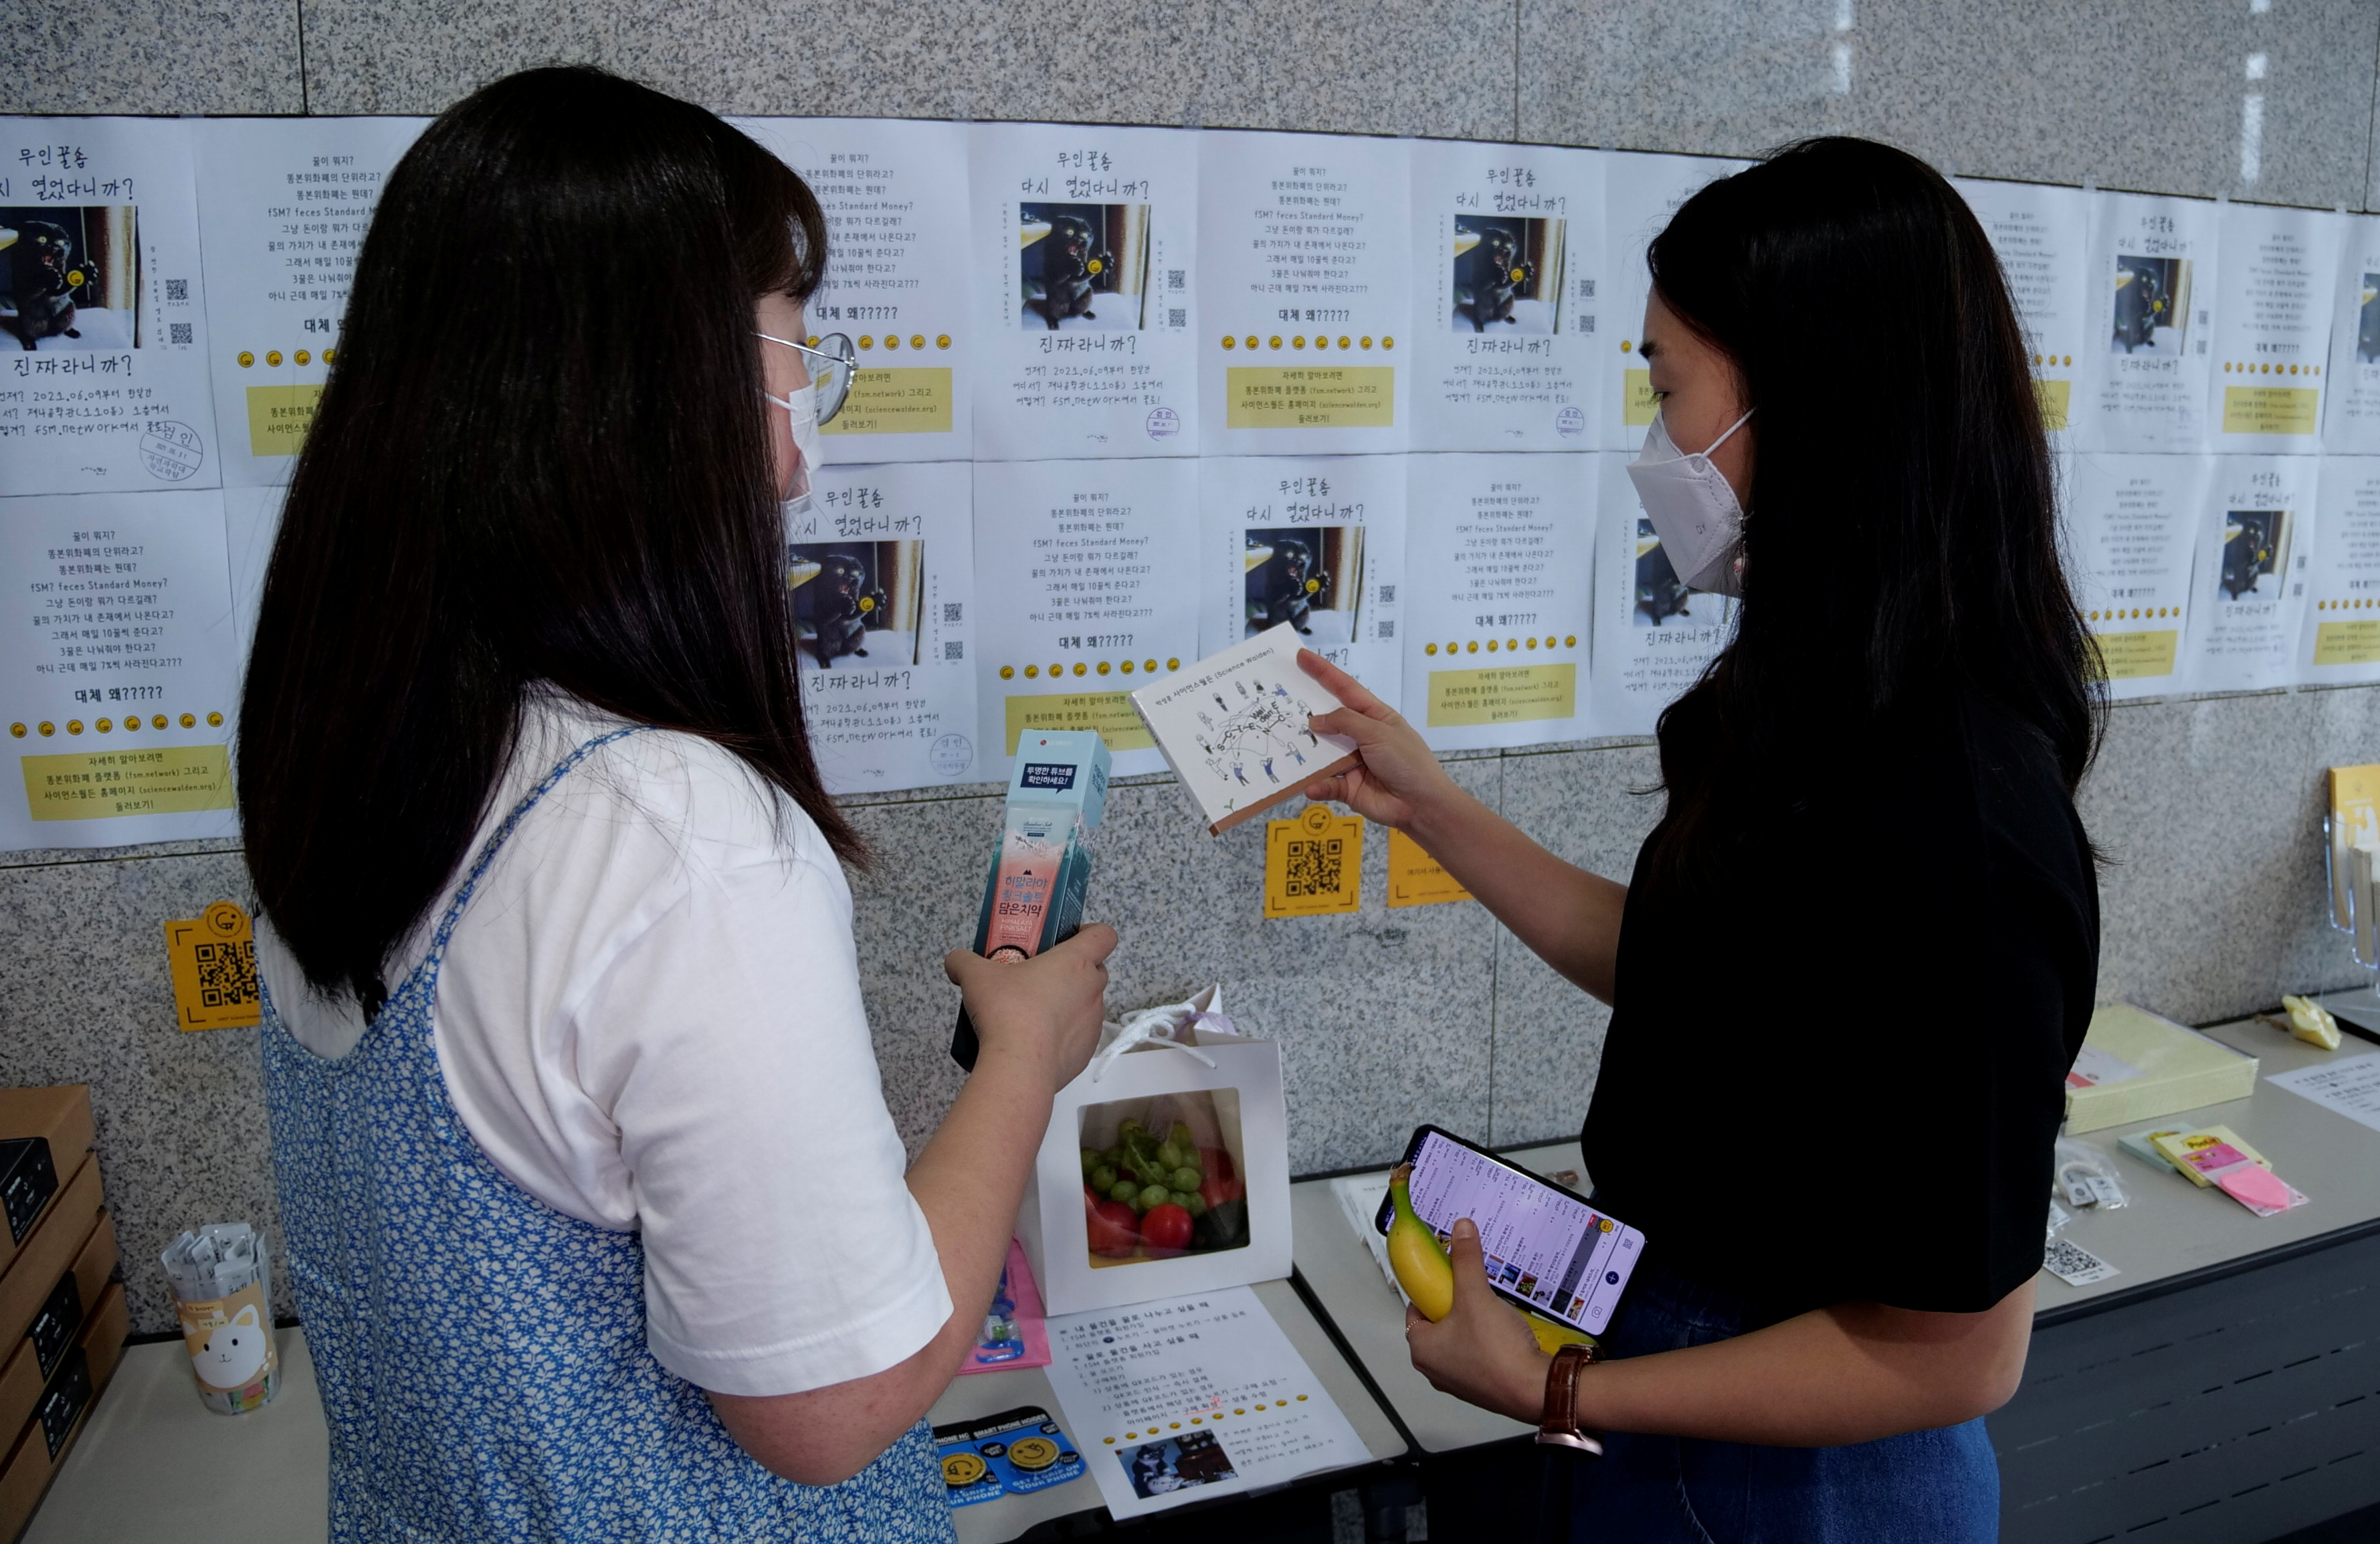 Women take a look at items at a faeces currency market at Ulsan National Institute of Science and Technology (UNIST) in Ulsan, South Korea, July 6, 2021. Picture taken on July 6, 2021. REUTERS/Daewoung Kim